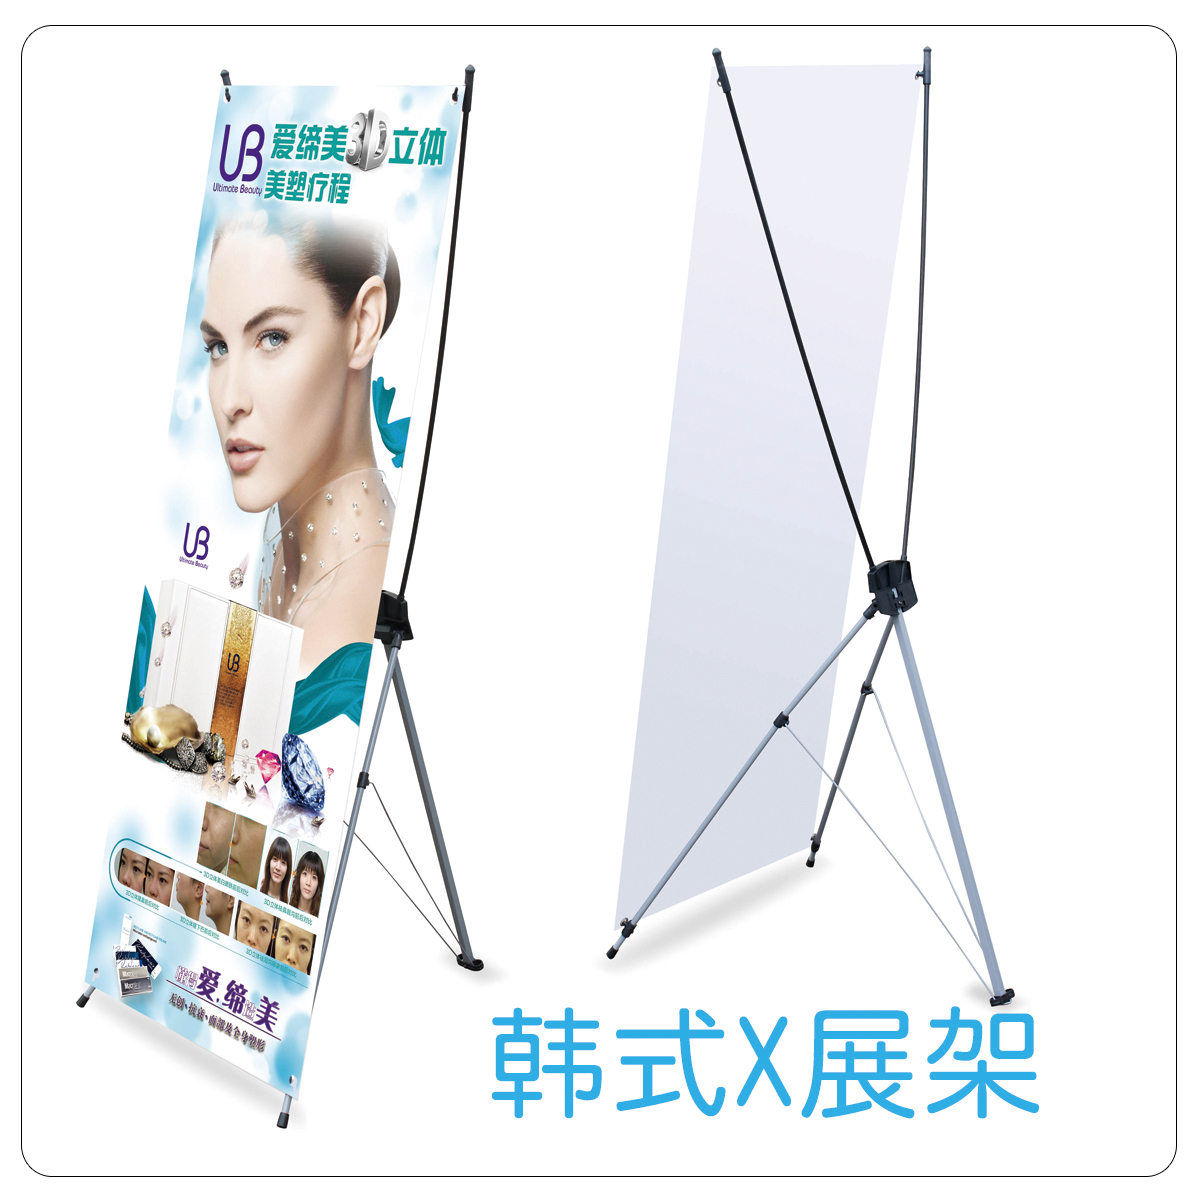 Han-X racks 6.01608 billion posters stand advertising architecture posters produced to Bora Bora Display Rack